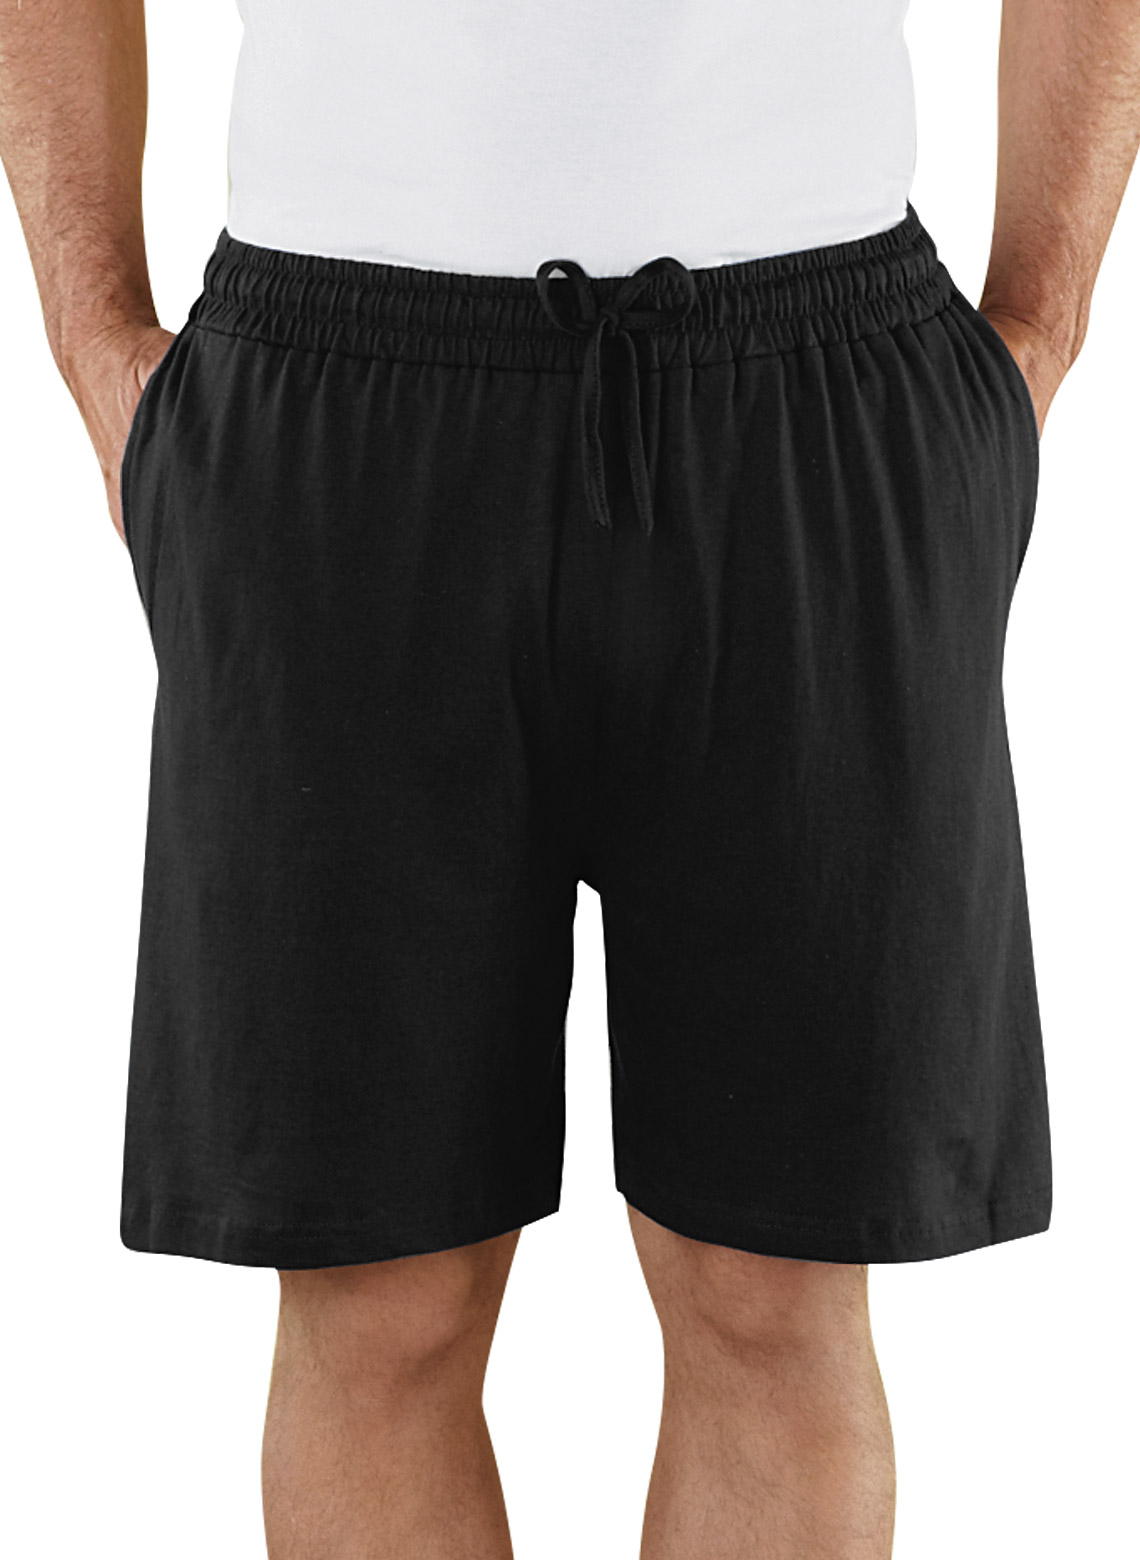 ★ Nordstrom Men's Shop Stretch Cotton Lounge Shorts @ For Sale Mens Lounge Amp Pajamas, Shop Sale Price Today and Get Up to % Off [NORDSTROM MEN'S SHOP STRETCH COTTON LOUNGE SHORTS] Find this Season s Must-Have Styles From Top Brands Order Online Today. Check Our Reviews Before You Buy!.